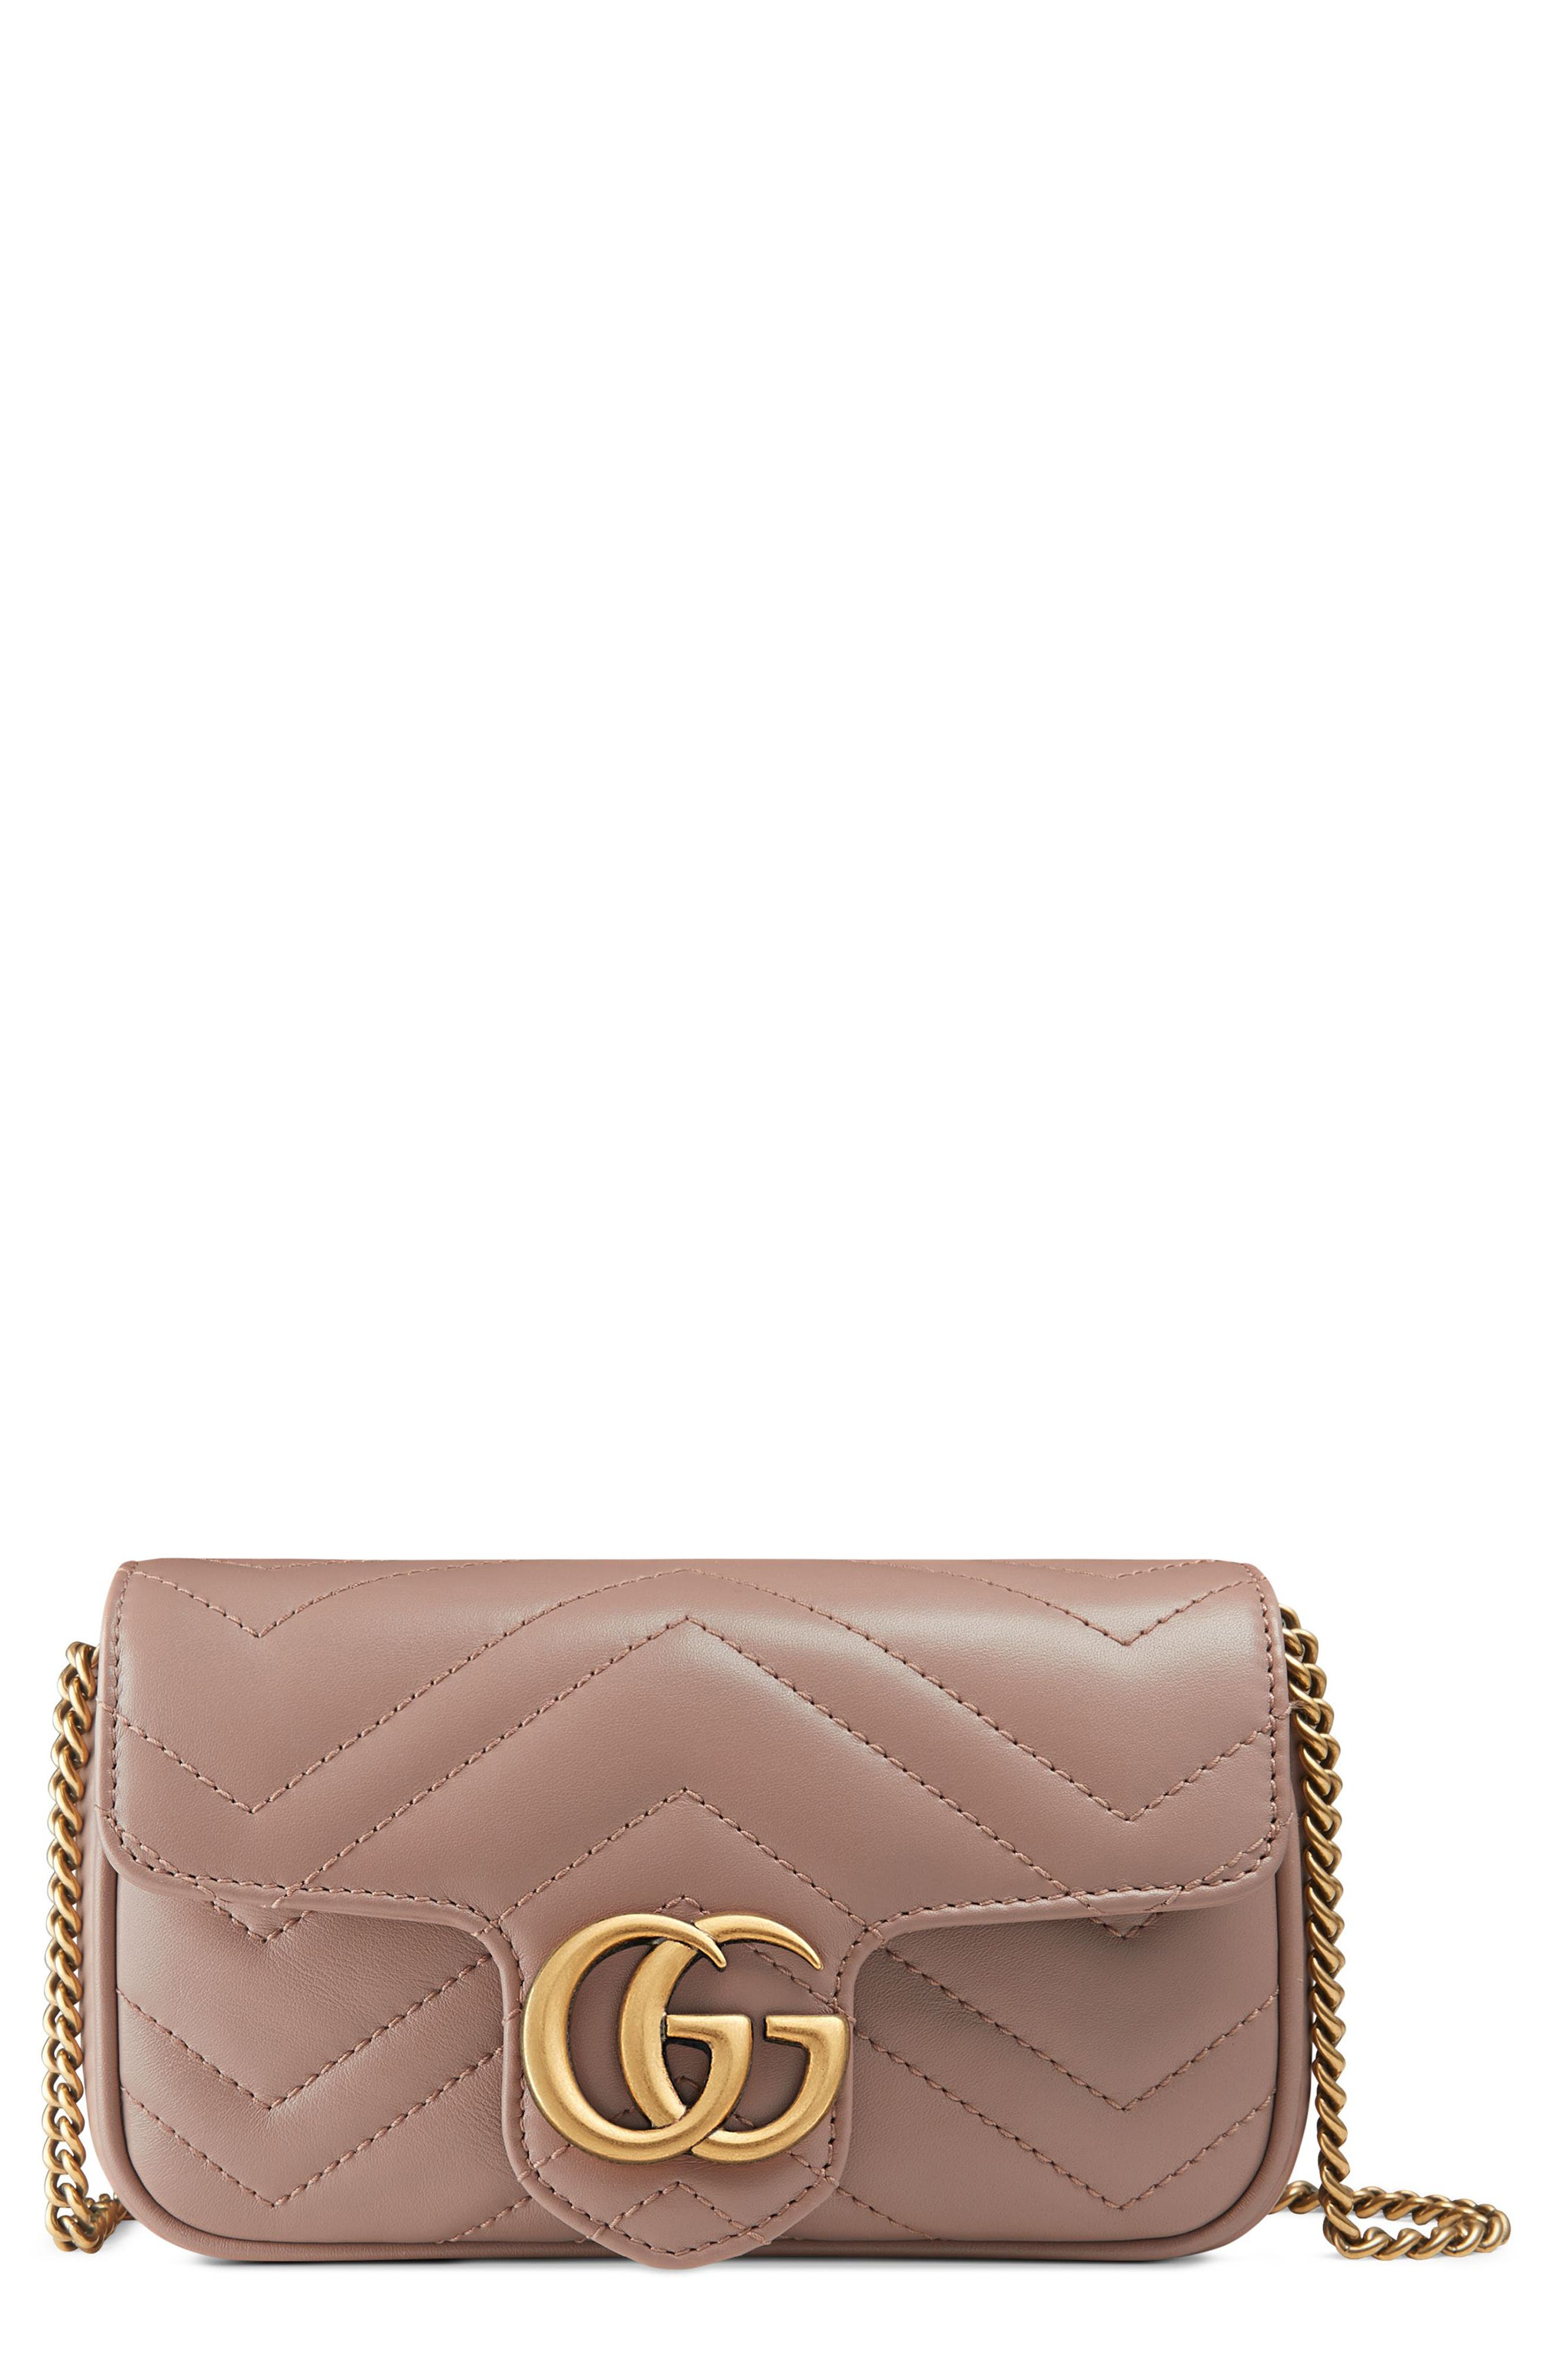 Women\u0027s Gucci Handbags